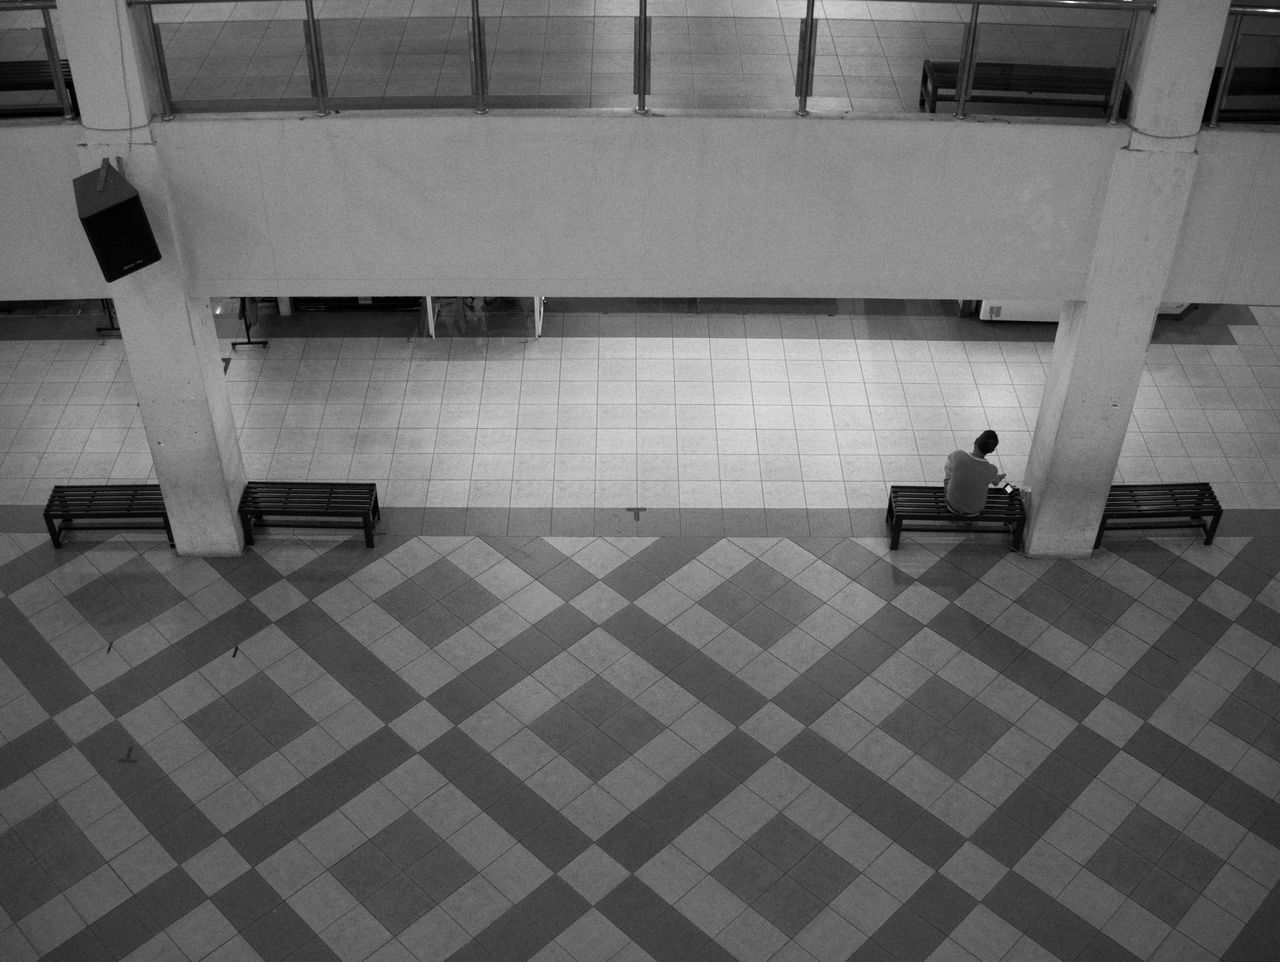 Asymmetry Black And White Photography Blackandwhite Flooring Geometric Shape High Angle View Indoors  Man And Music Men Person Seat Street Photography Streetphotography